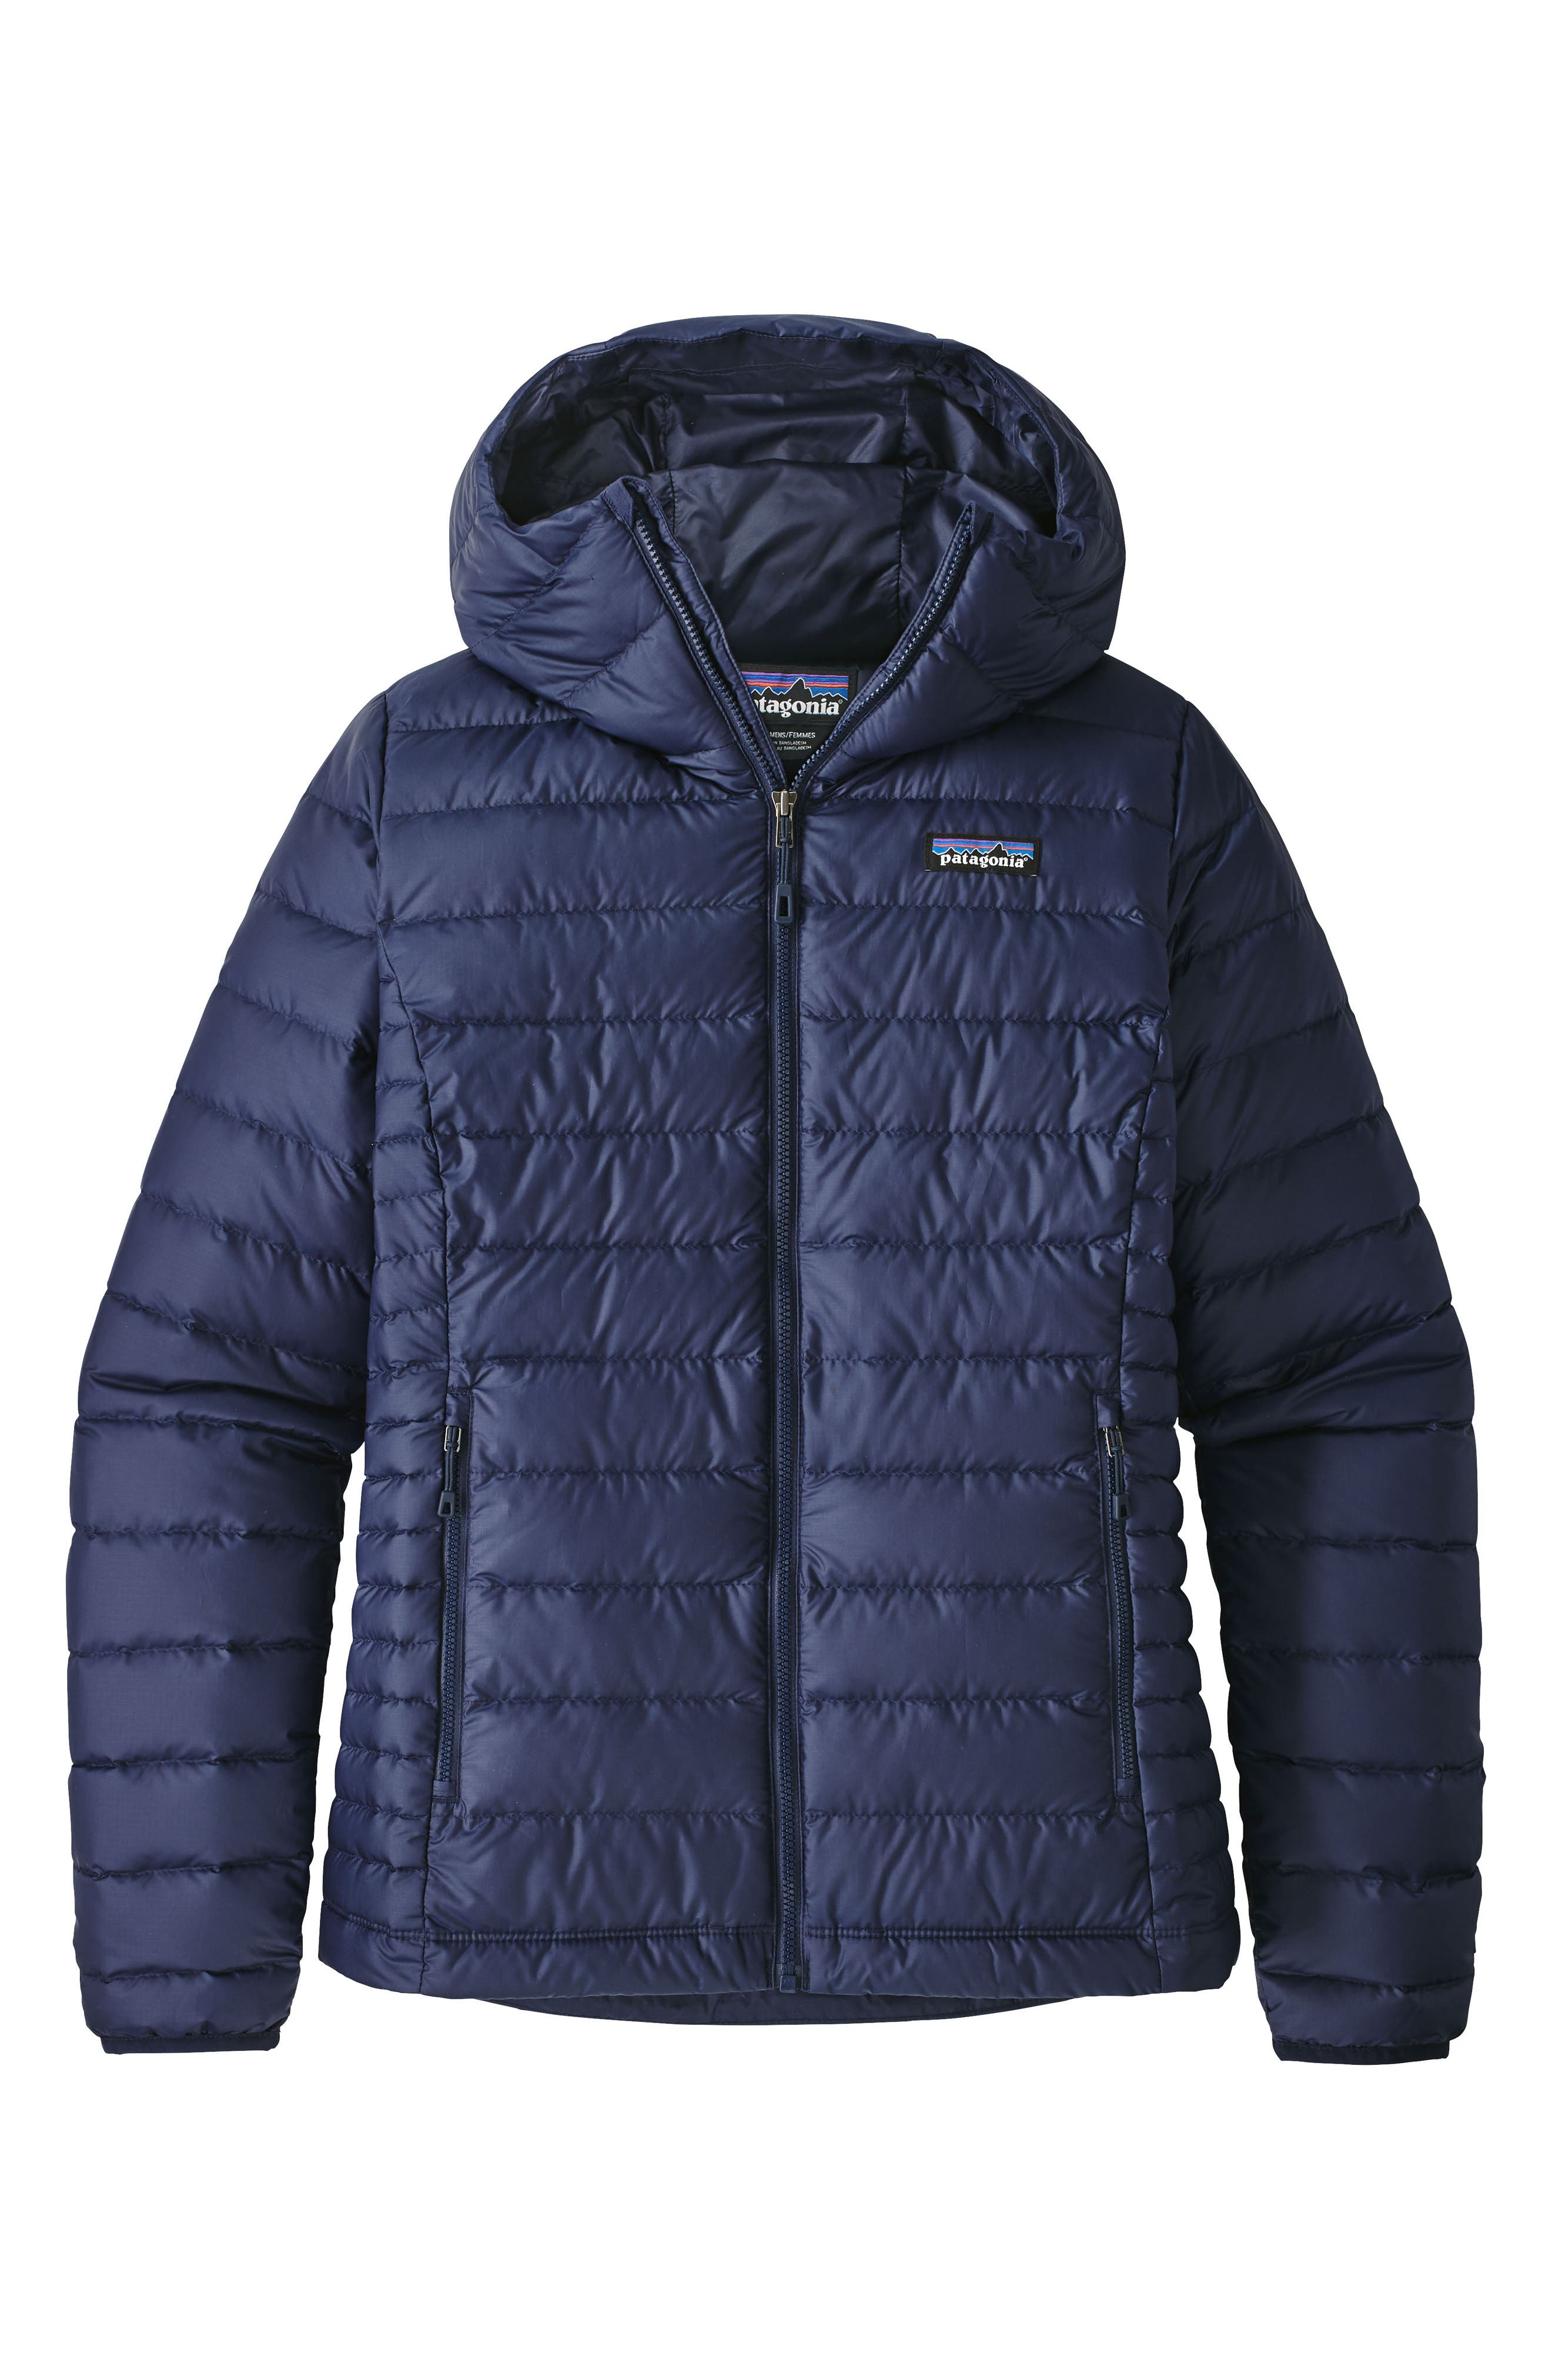 Patagonia Quilted Water Resistant Down Coat, Blue